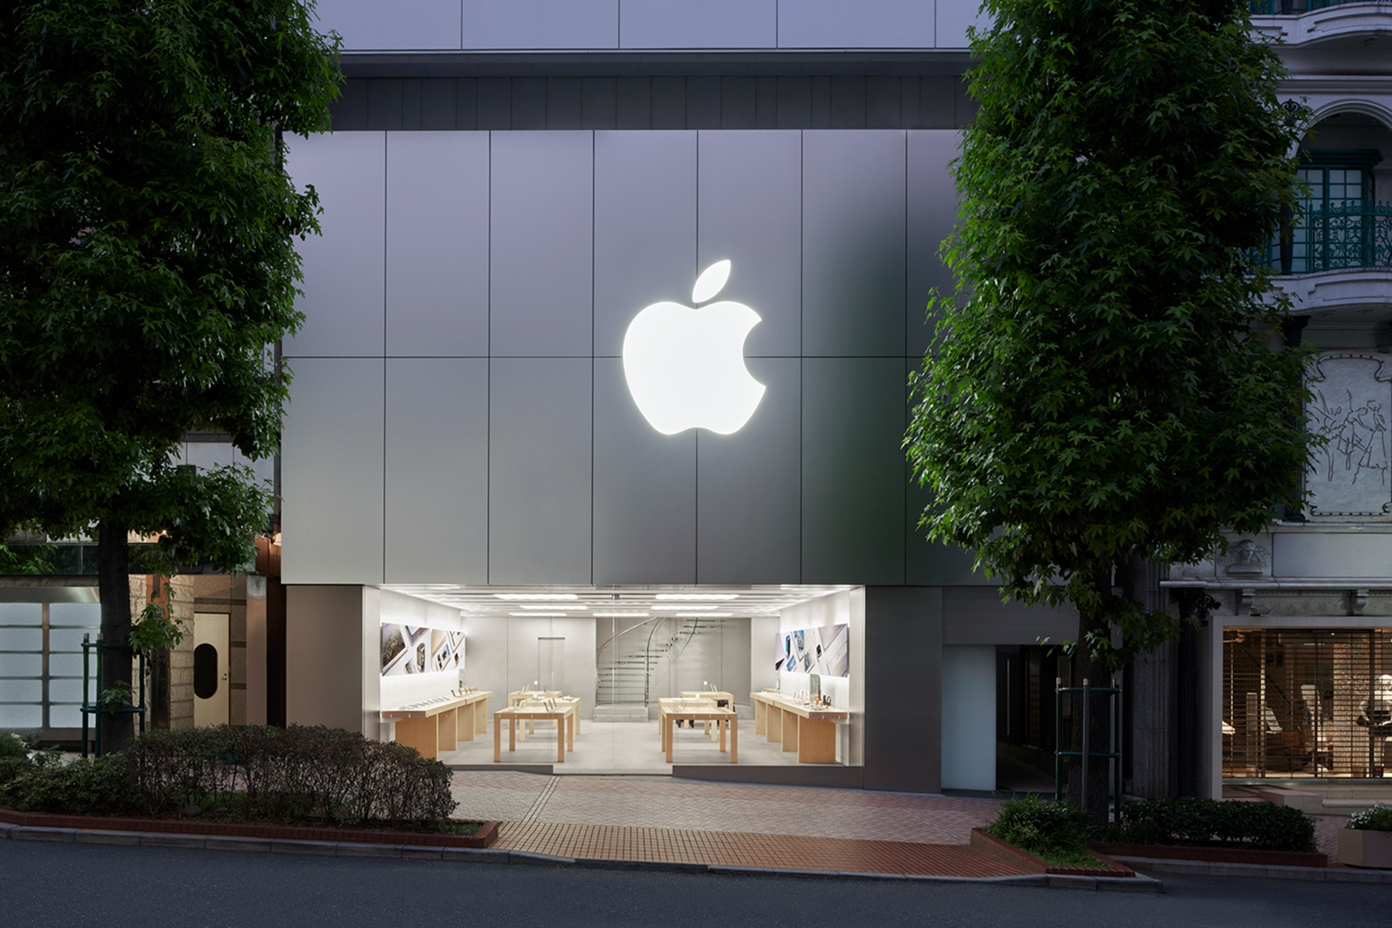 applestoreshibuya